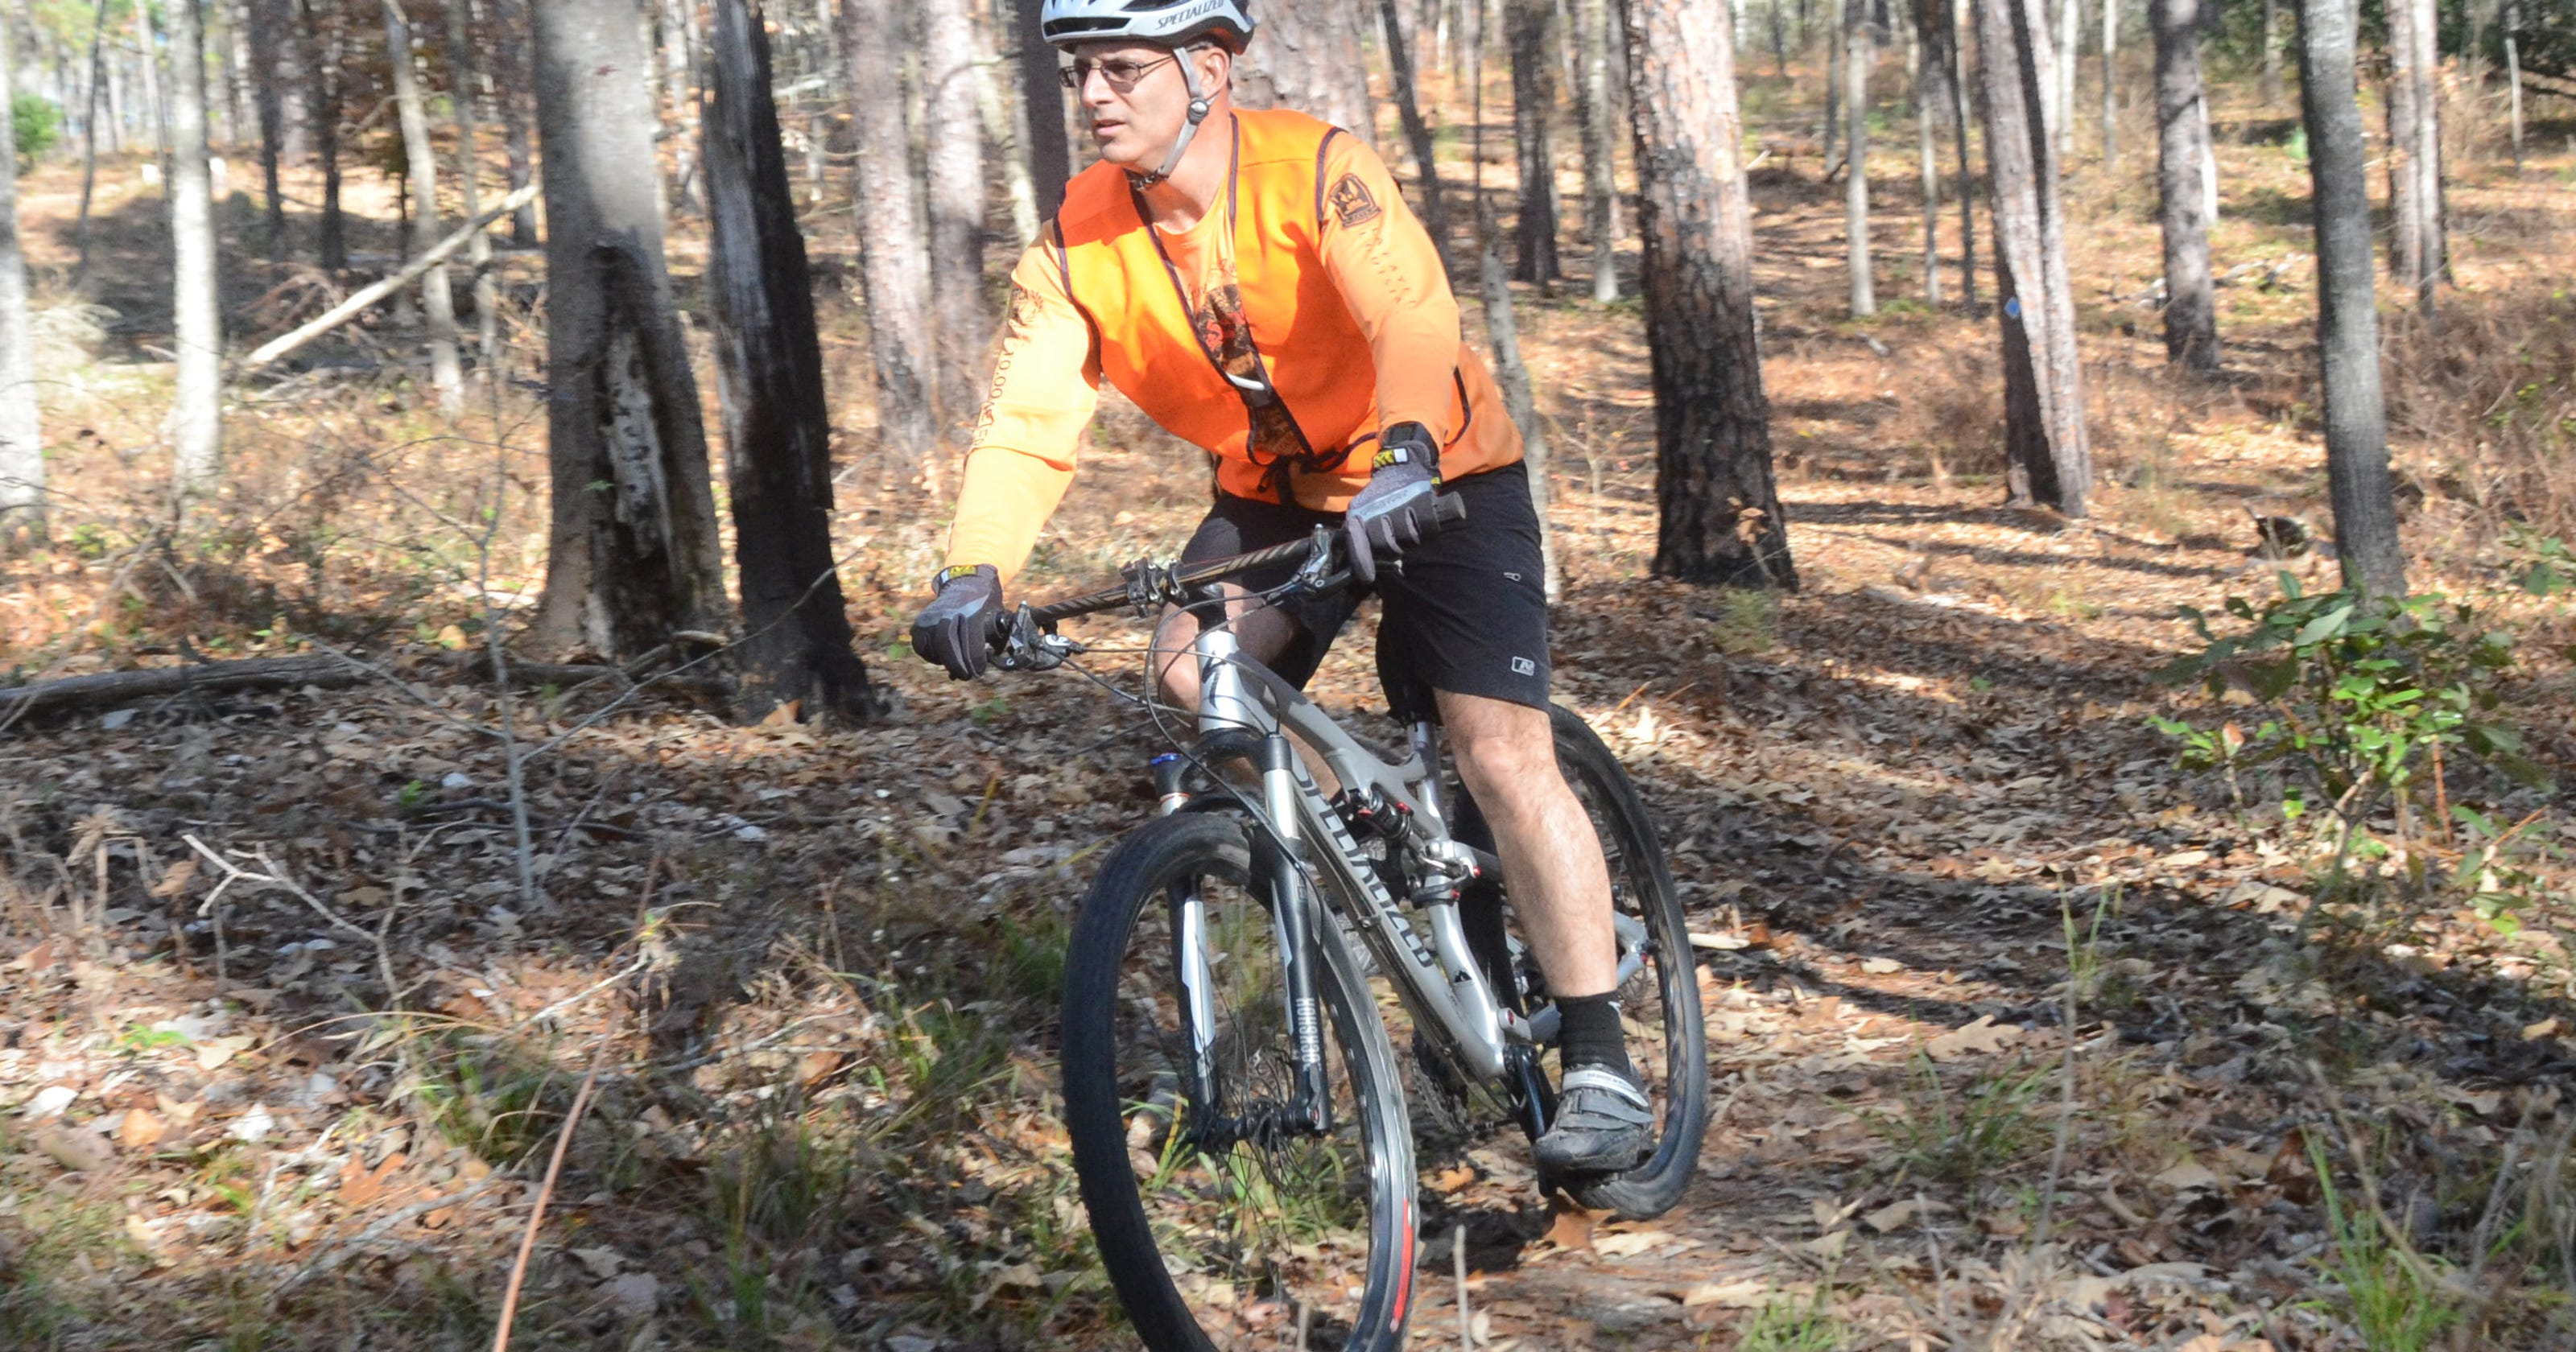 Volunteers sought to maintain Kisatchie trails on